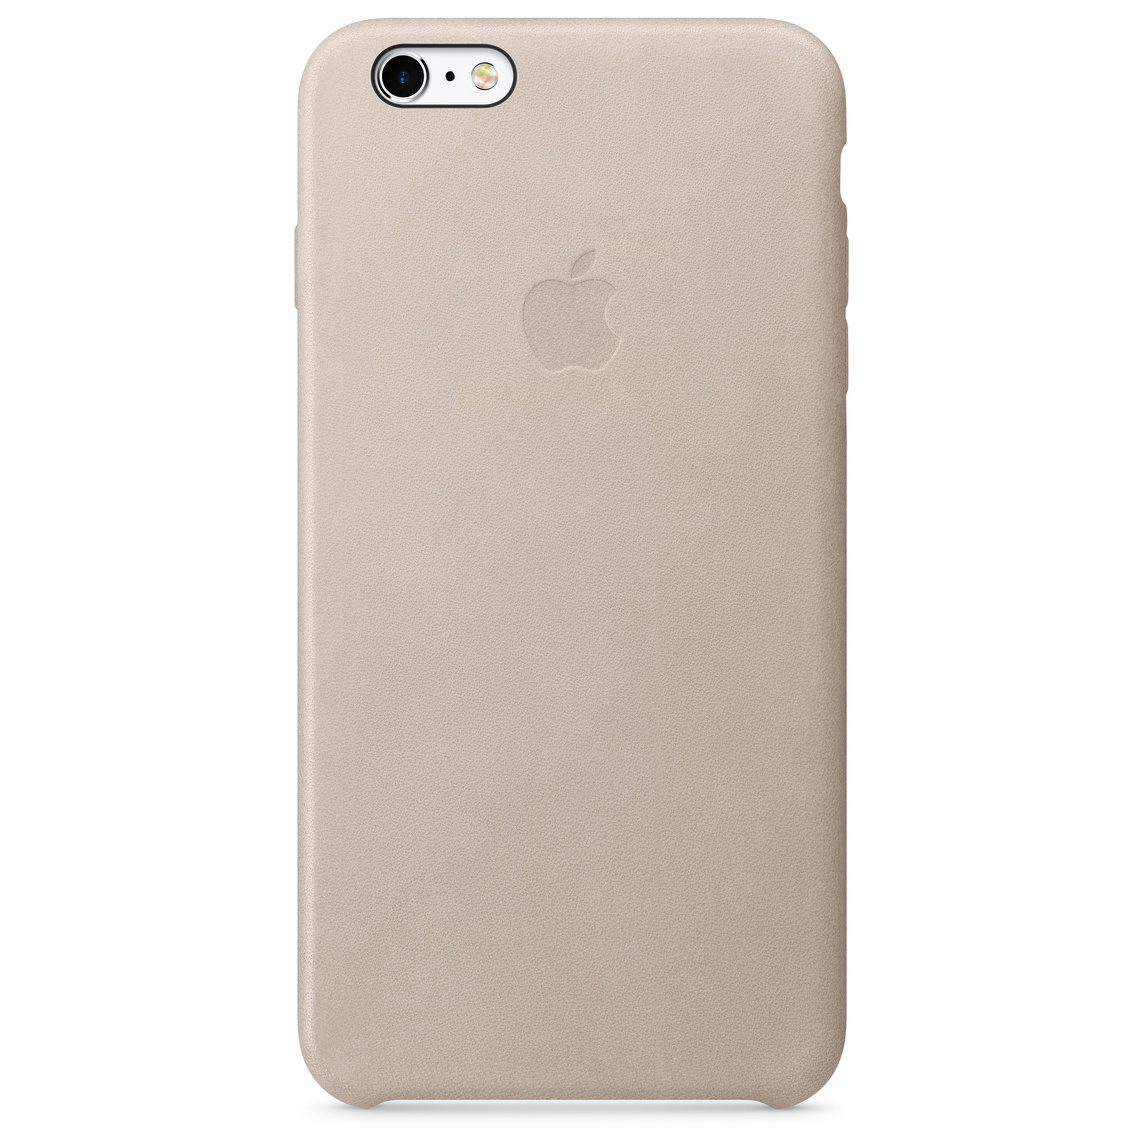 online store 130d3 a6f9b iPhone 6 Plus / 6s Plus Leather Case - Rose Grey